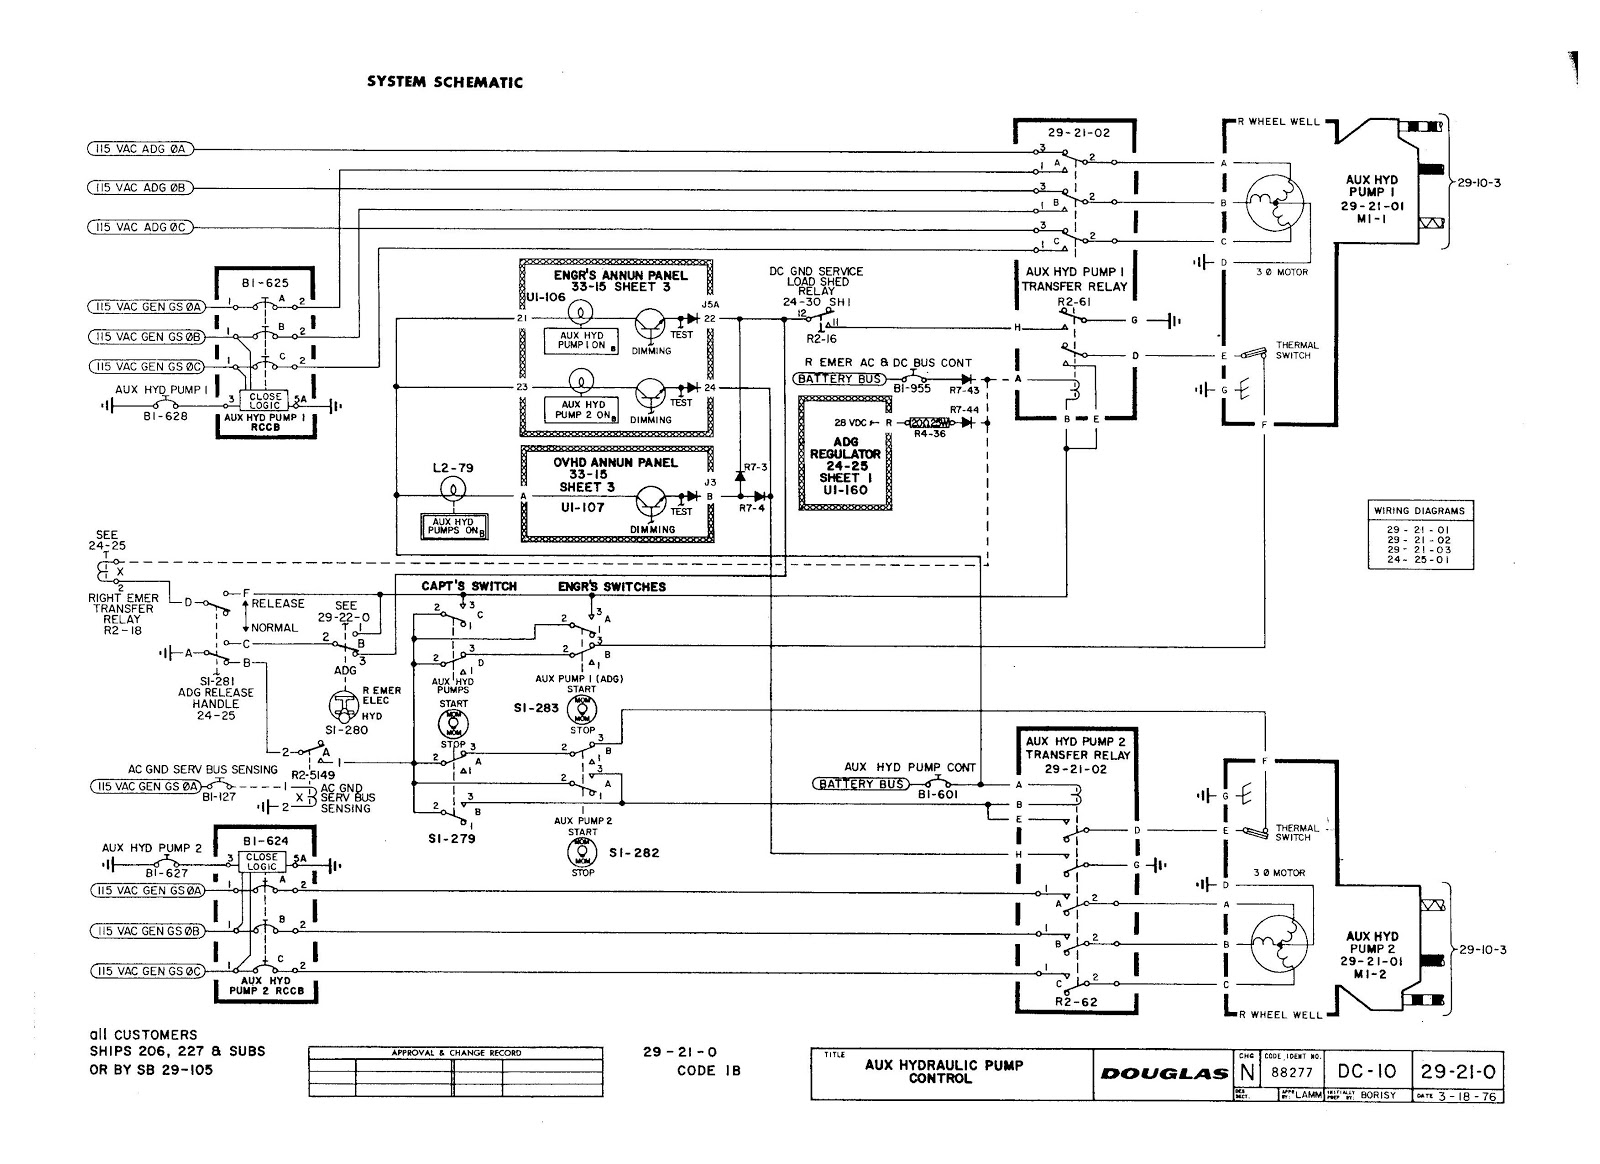 How To Read Wiring Diagrams Aviation On How Images Free Download